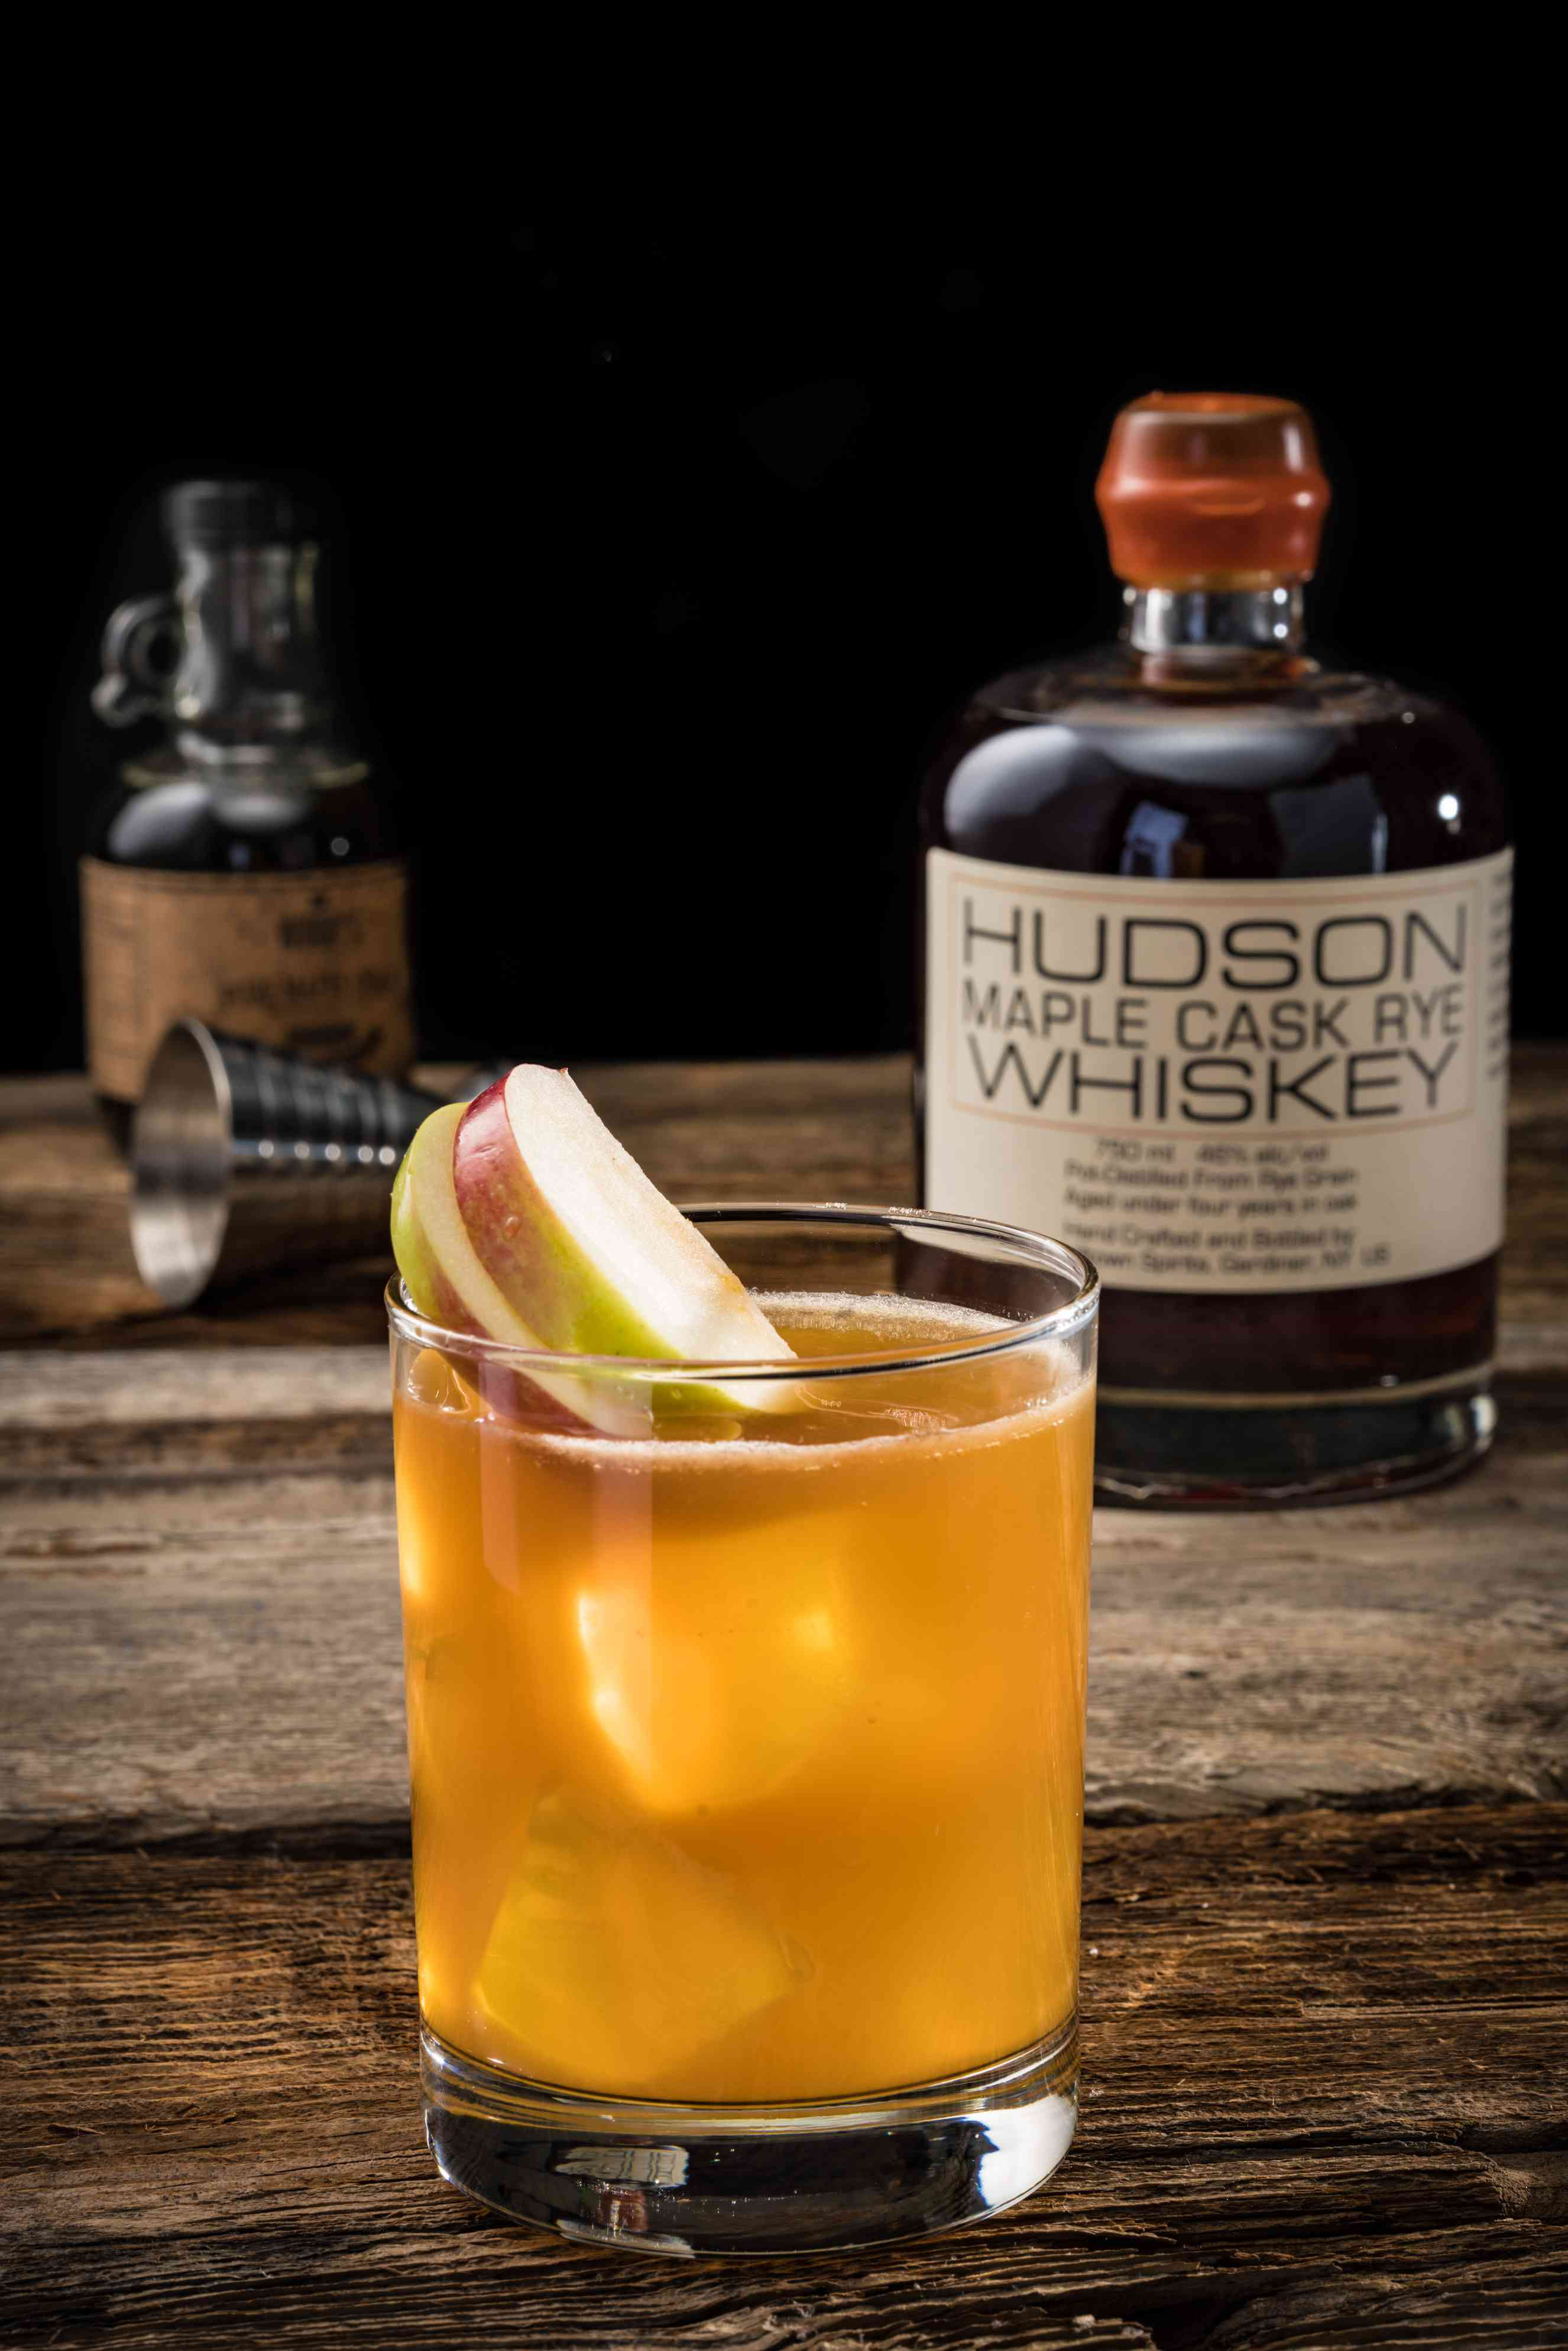 alcohol, signature cocktails, drink, glass, whiskey, apple, garnish, highball glass